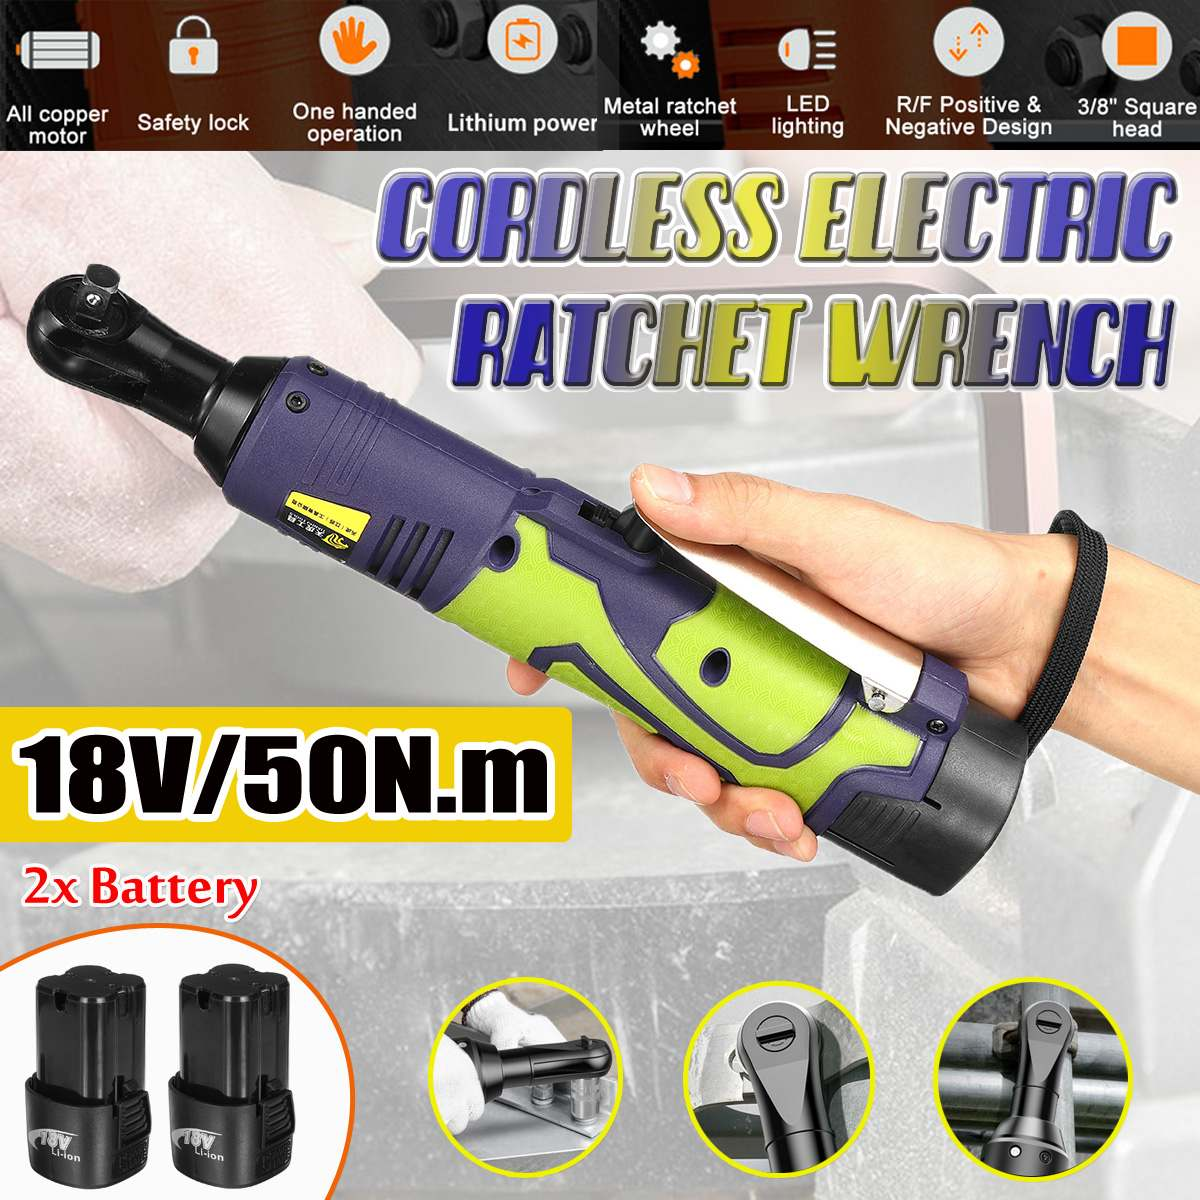 50Nm 3/8'' Lithium-Ion Battery Electric Ratchet Wrench Rechargeable Electric Cordless Wrench Kit Power Tools Car Repair Tool